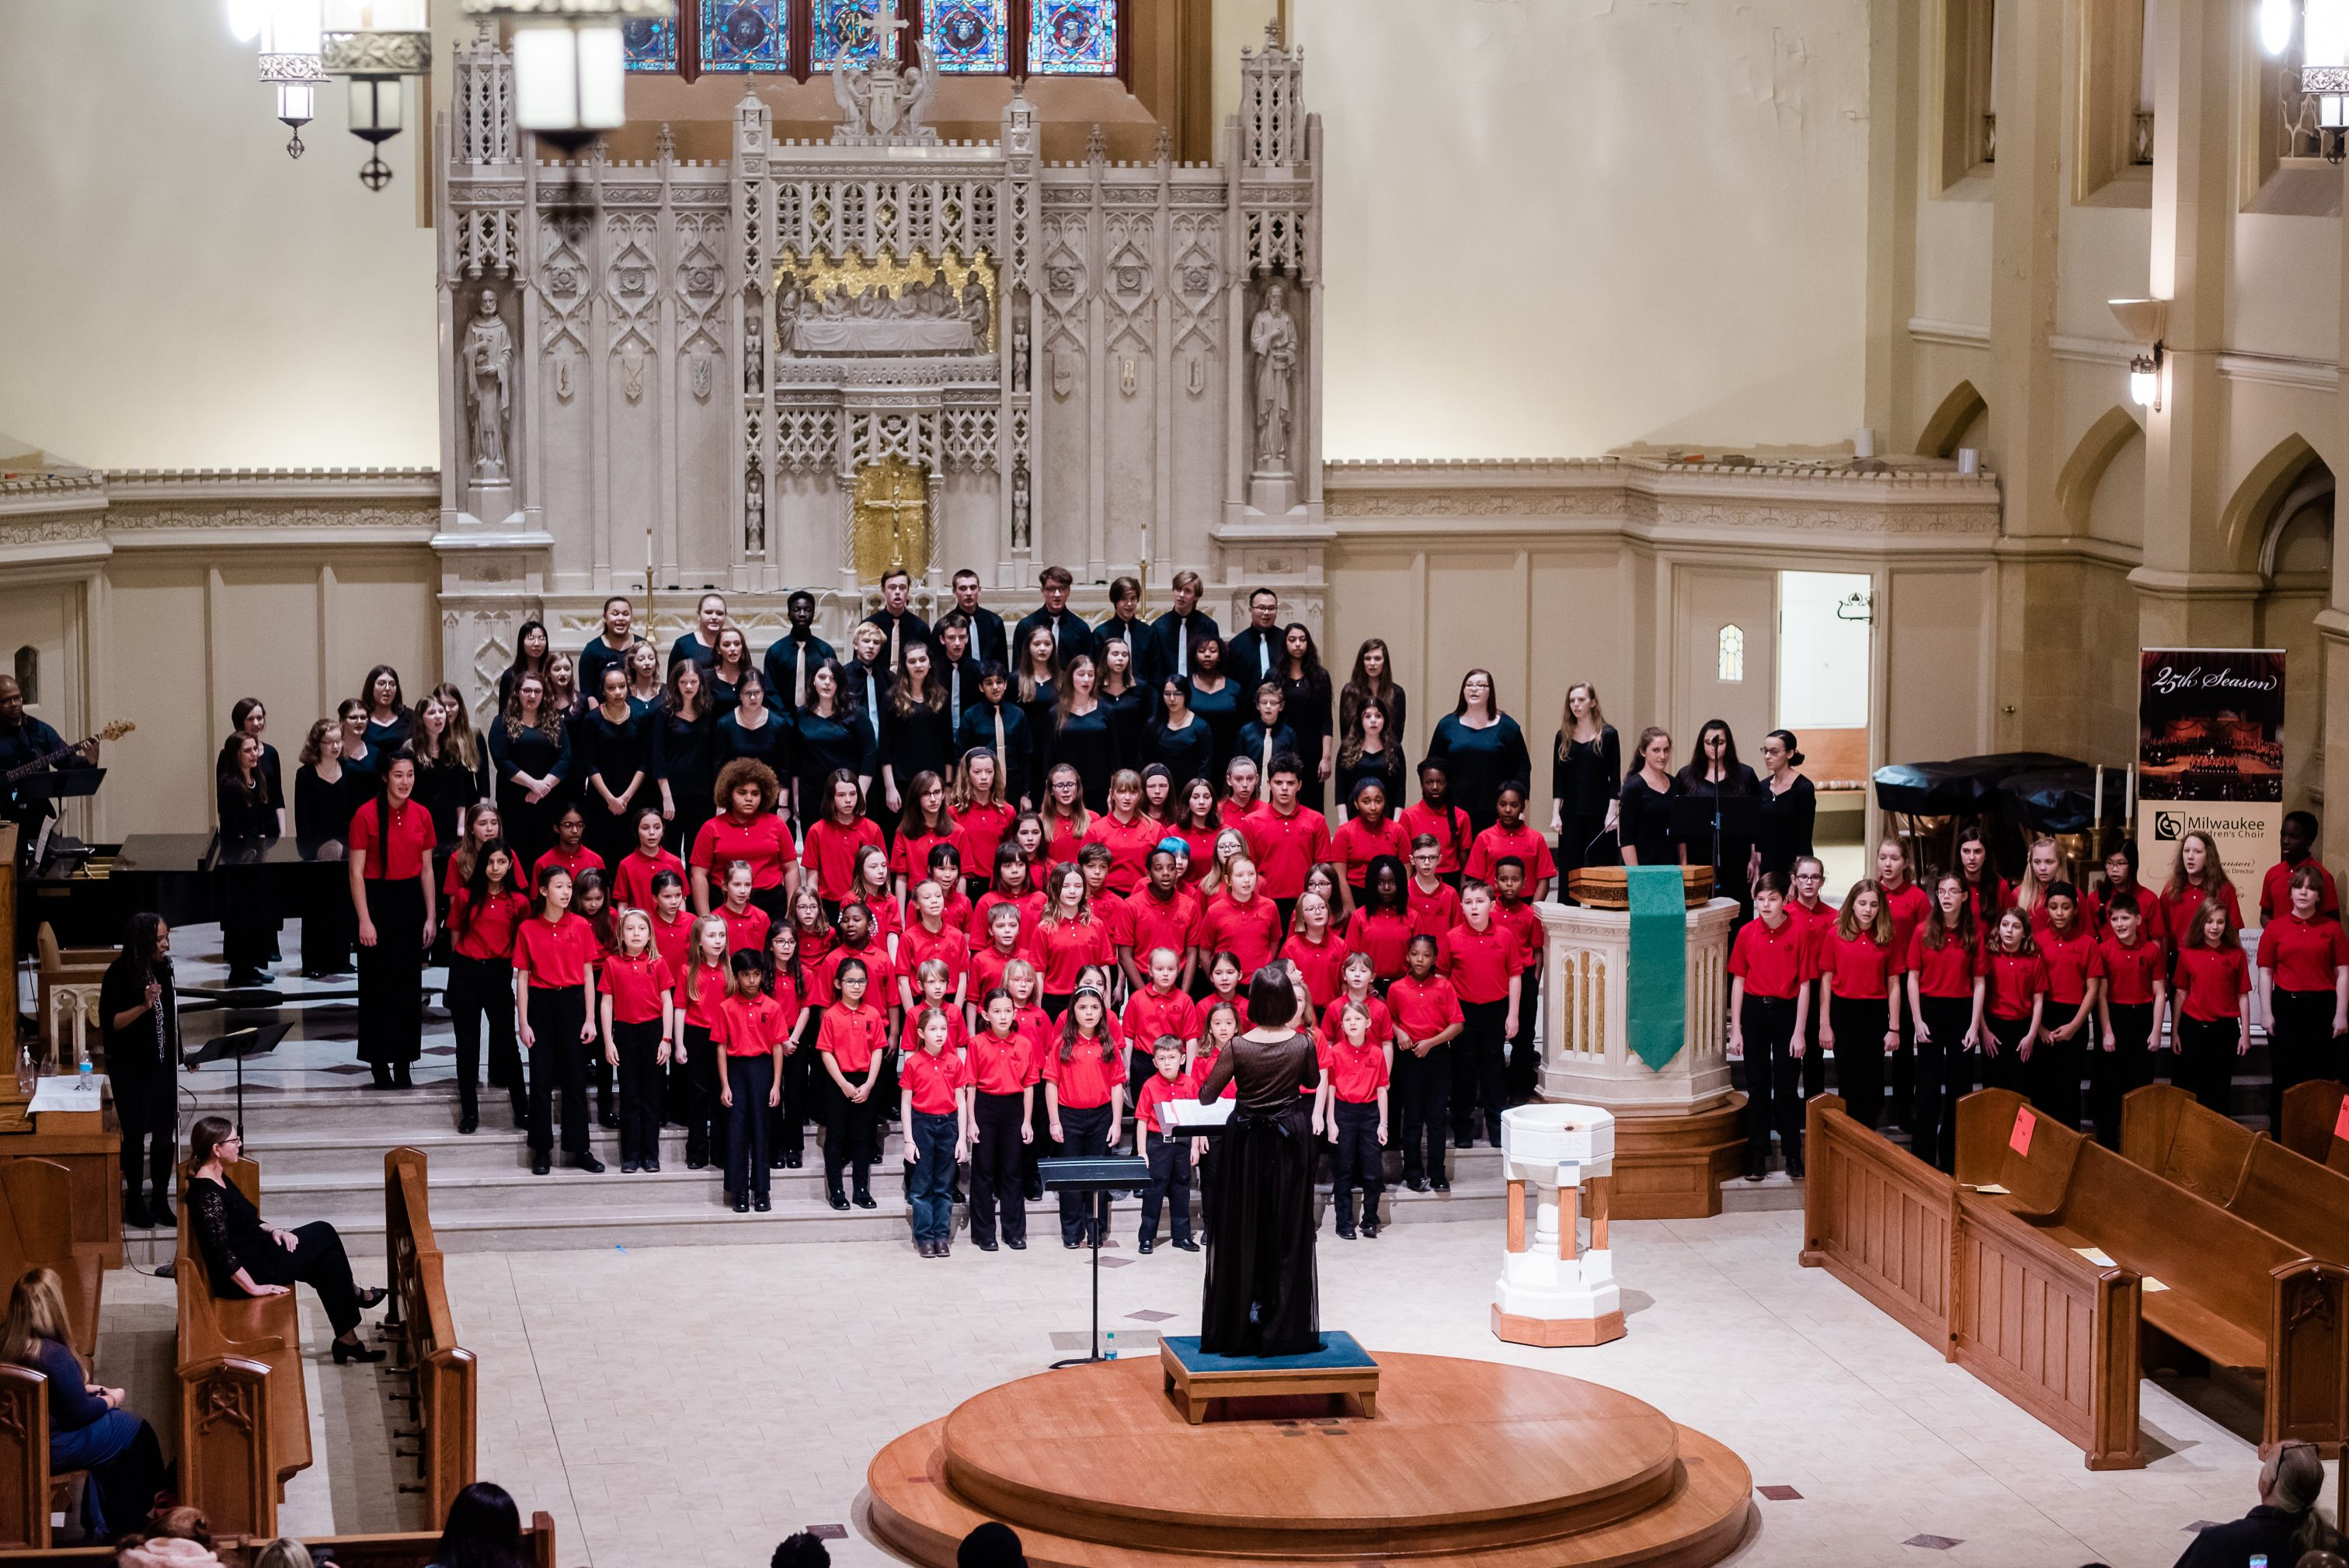 On May 18, 2019, the Milwaukee Children's Choir celebrated its 25th anniversary with a special concert held at St. Sebastian Parish.